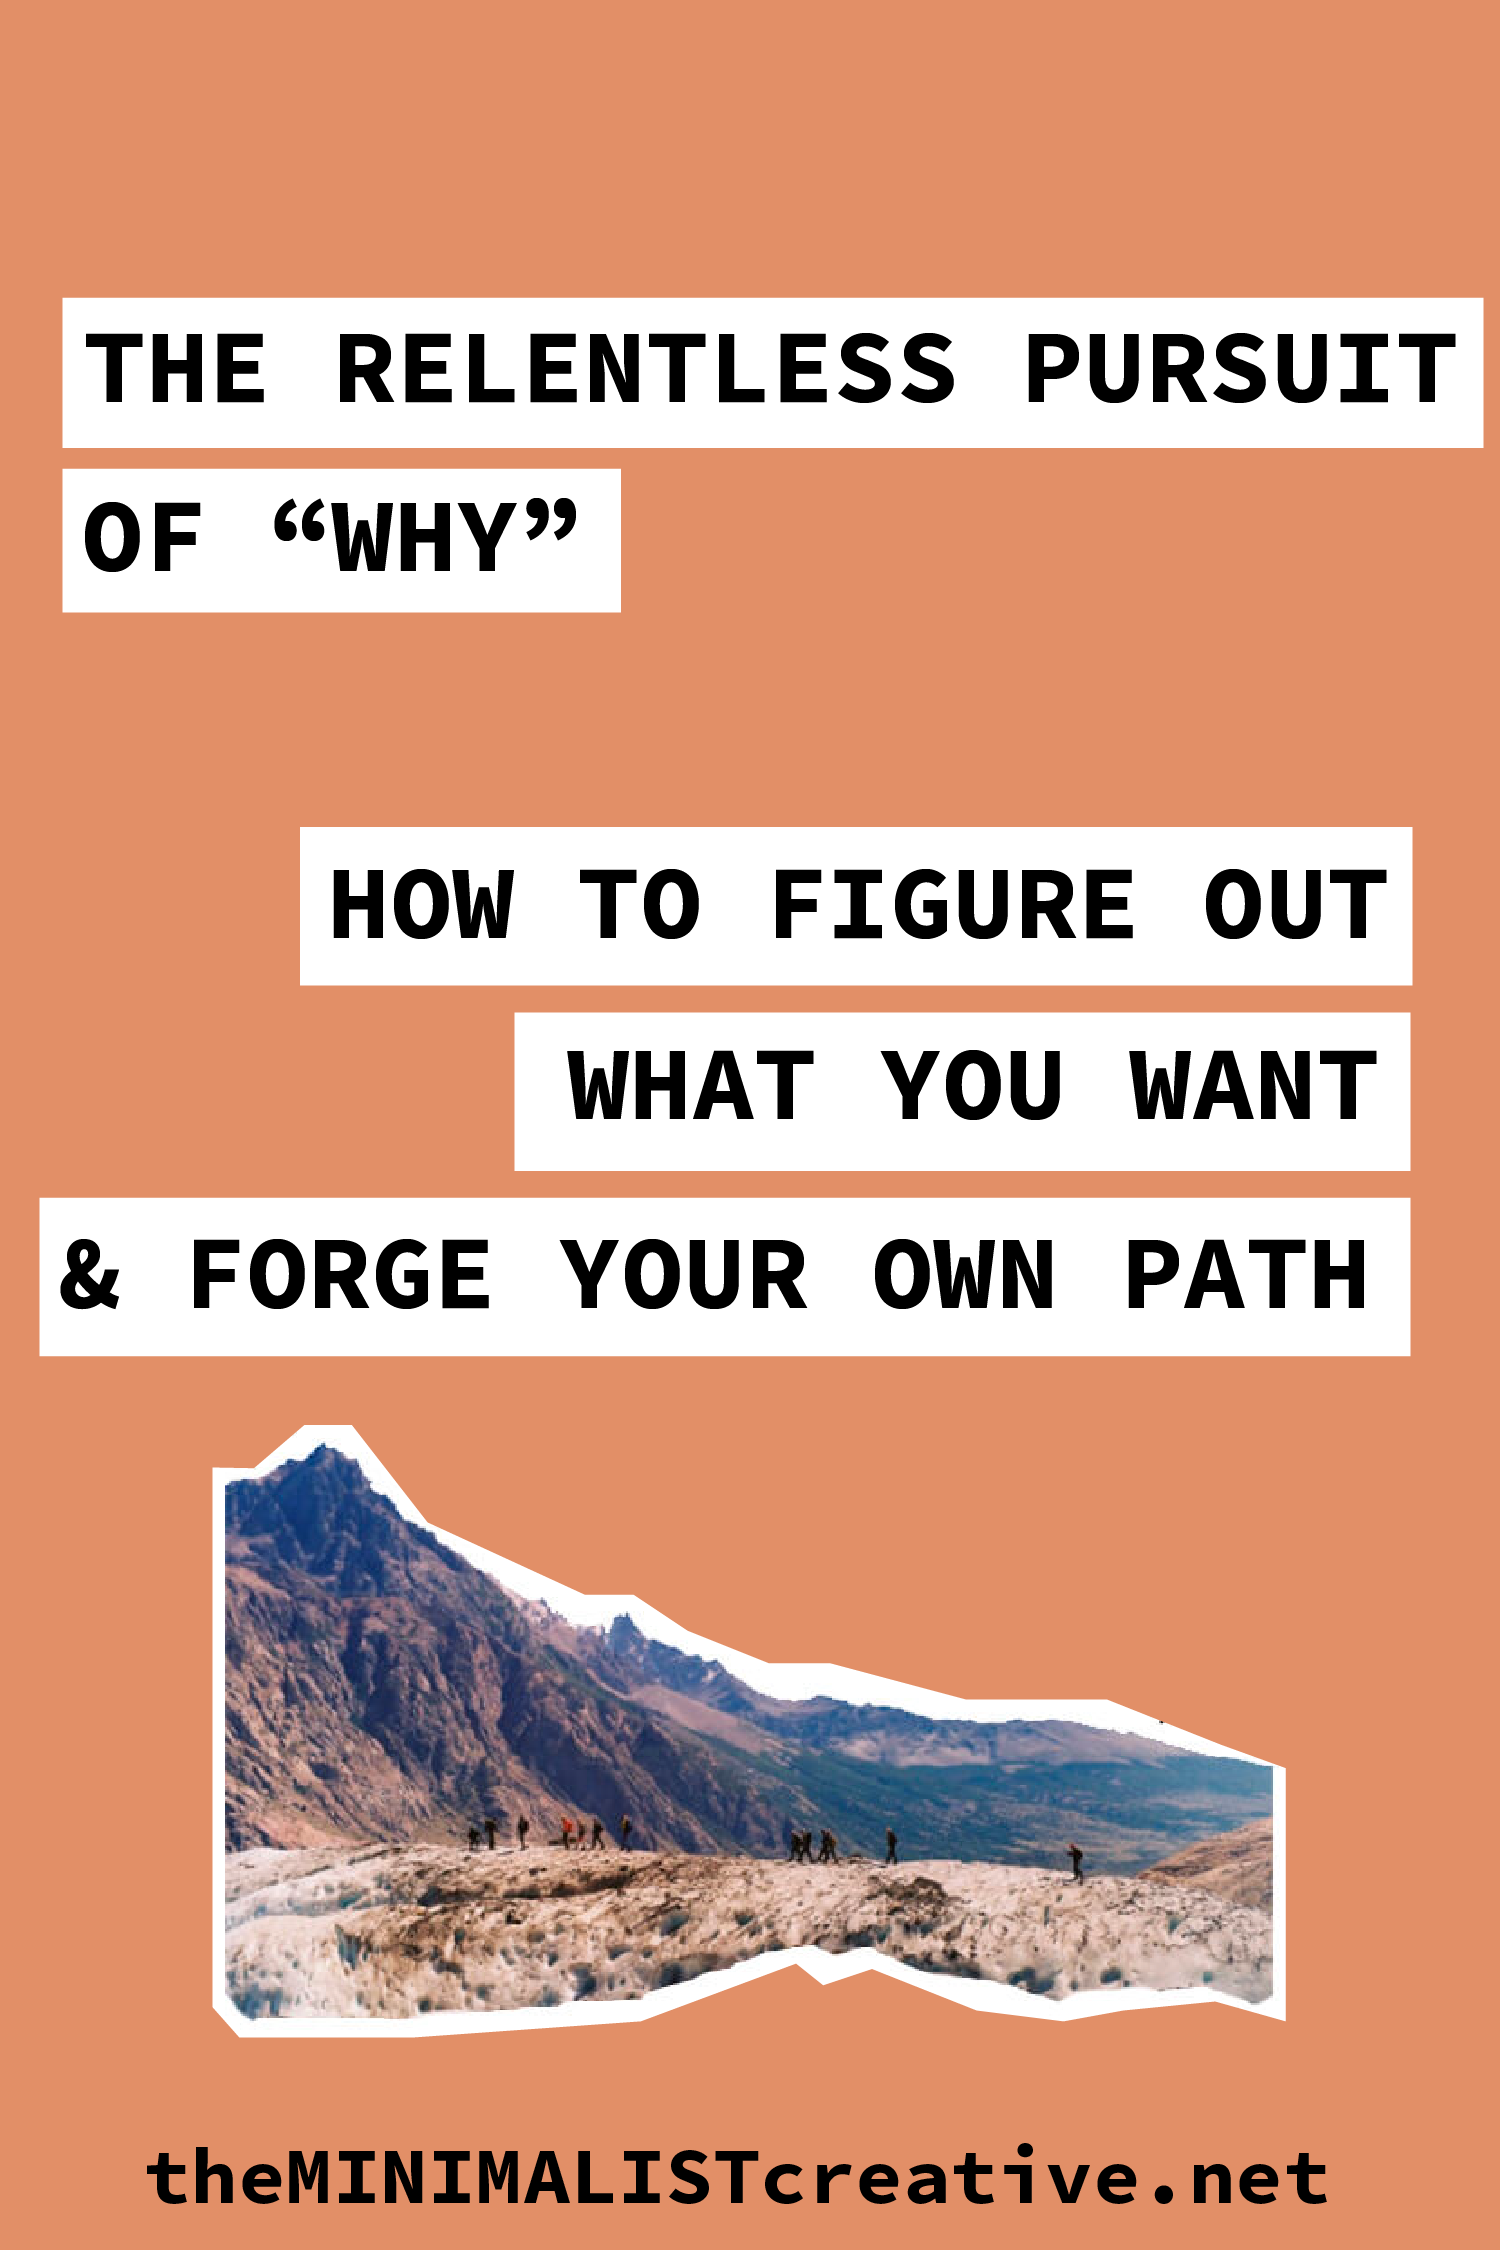 The Relentless Pursuit of Why - How To Figure Out What You Want and Forge Your Own Path-01.png